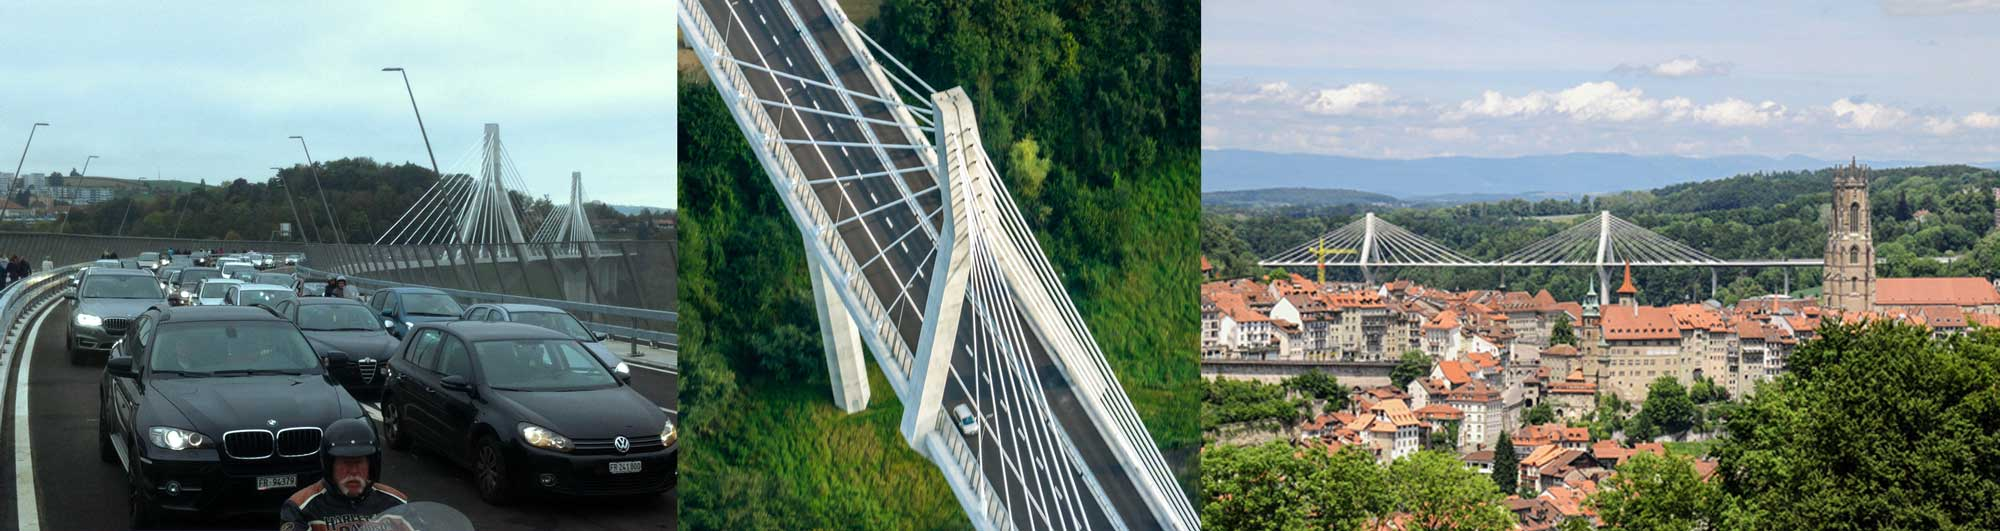 Improving traffic flow - Poya Bridge, Fribourg, Switzerland